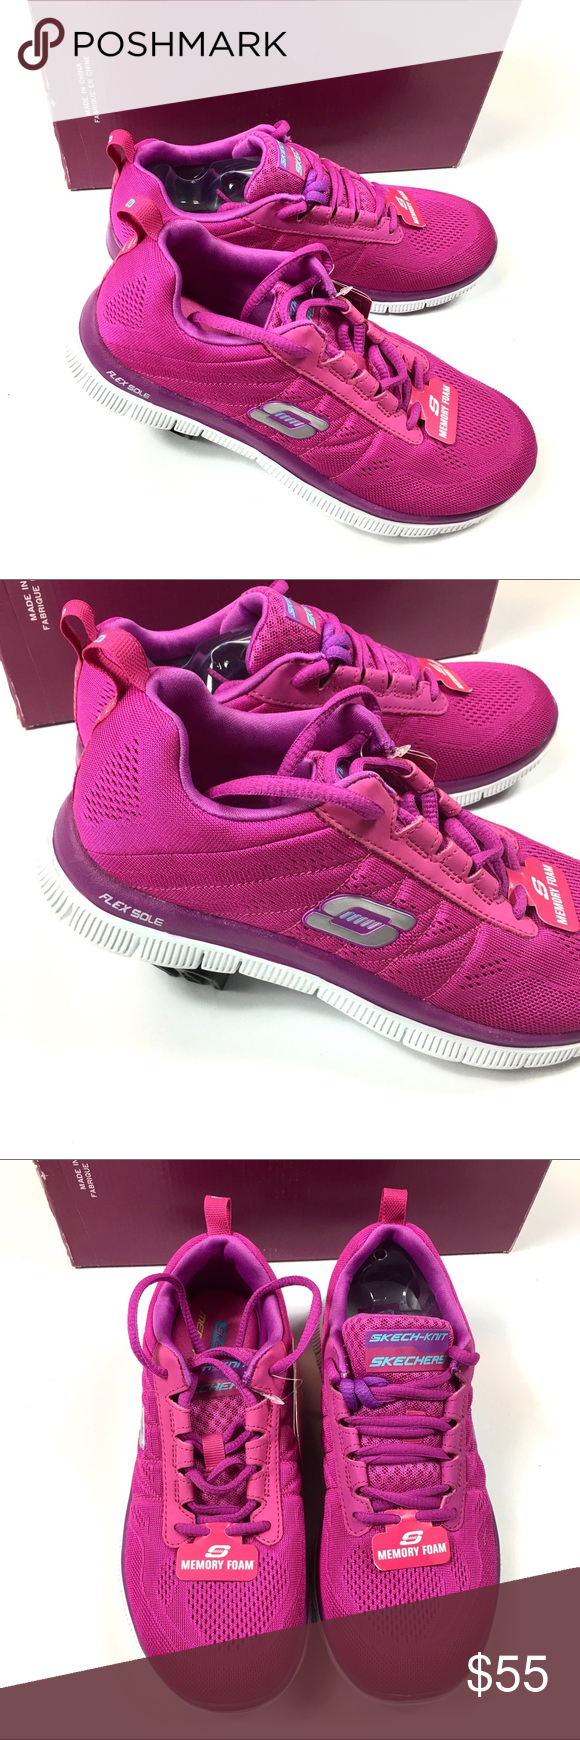 skechers shoes offers